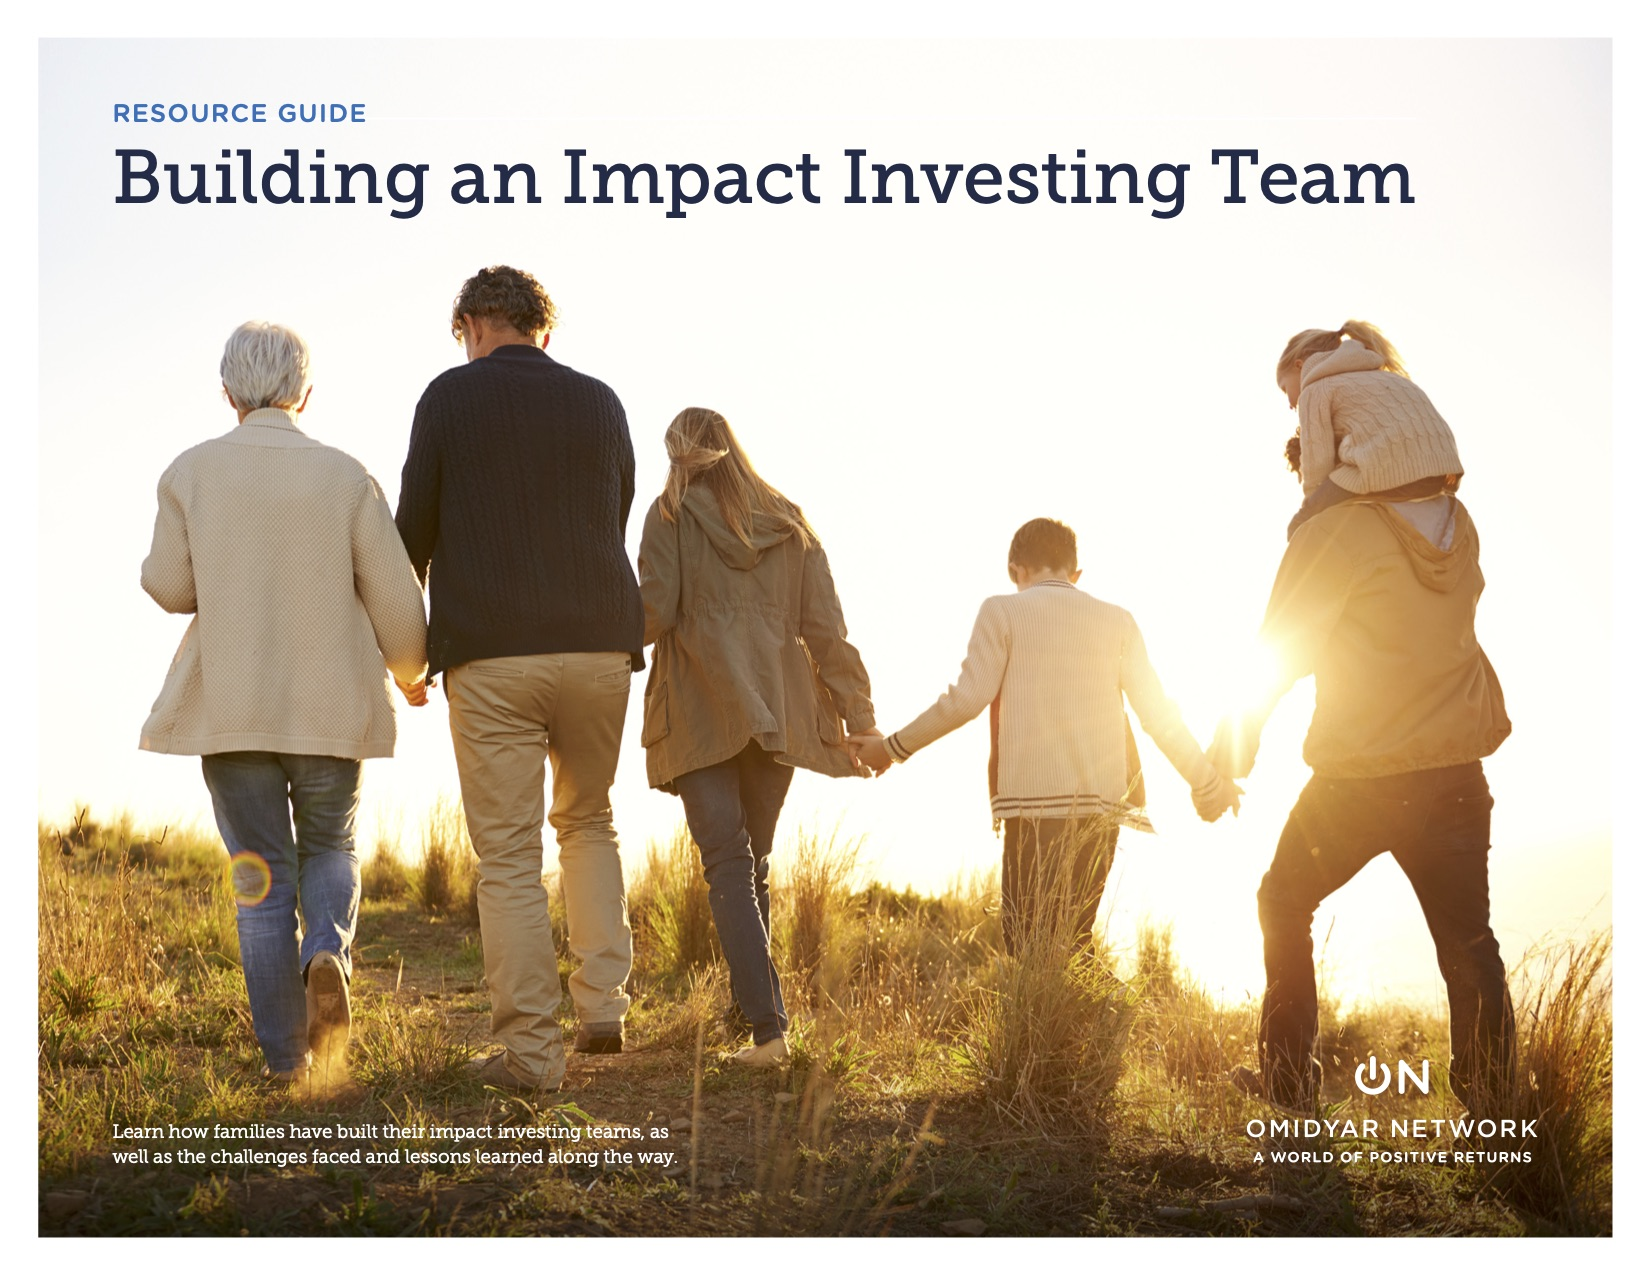 Building an Impact Investing Team by by Omidyar Network